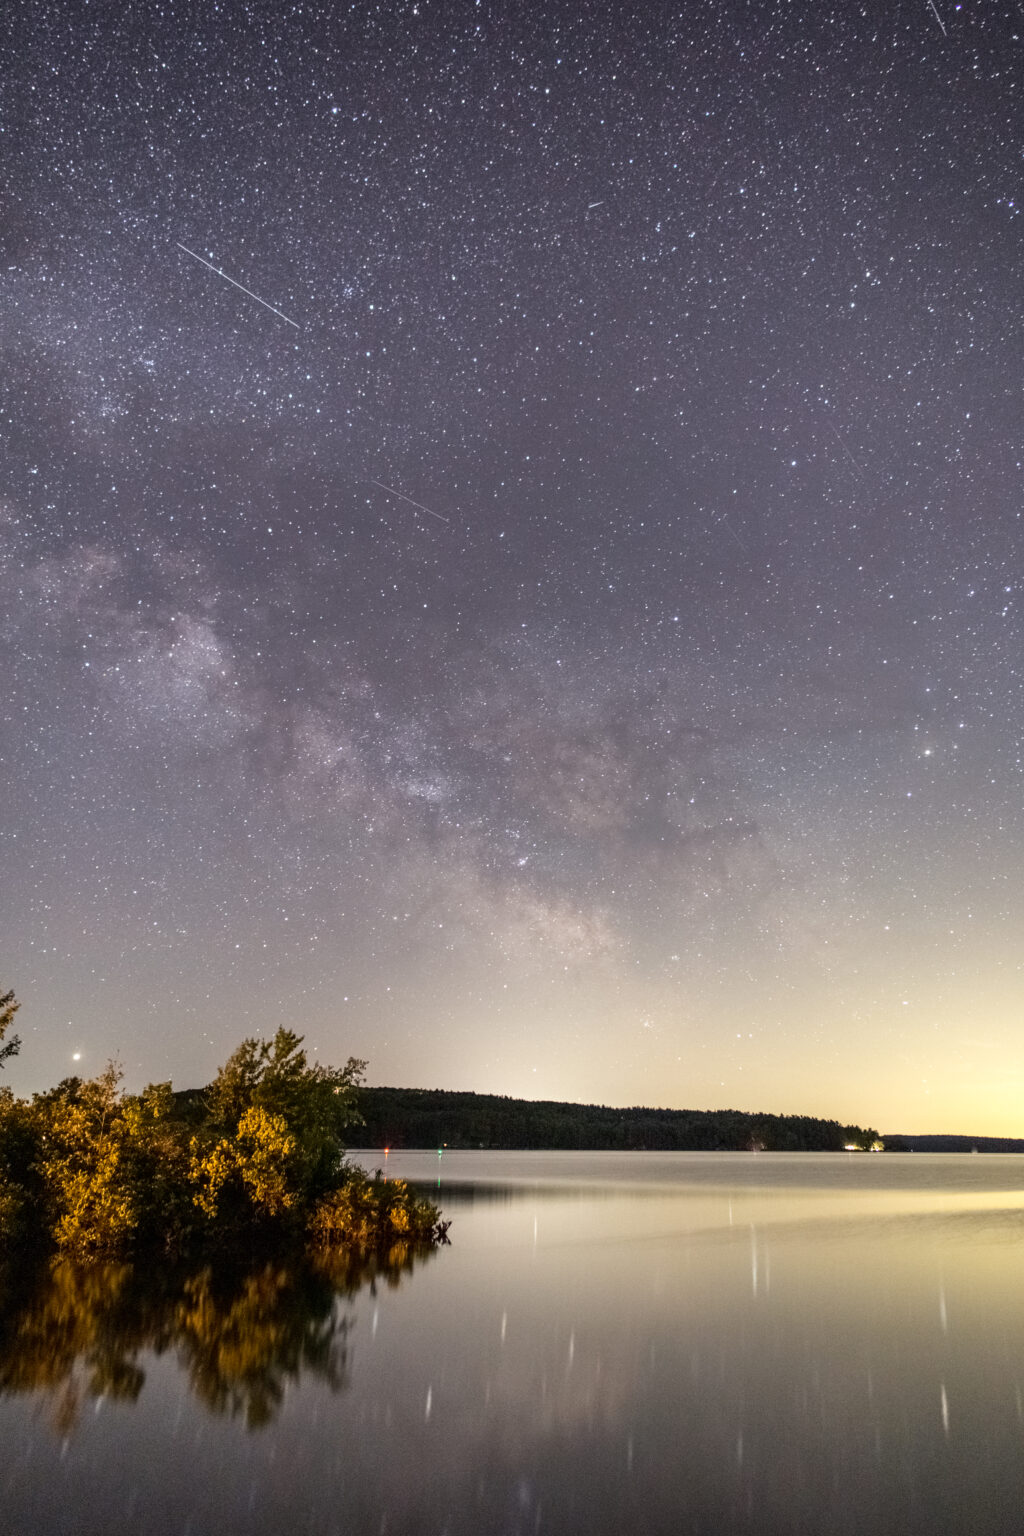 Milky Way Galaxy and a Calm Lake